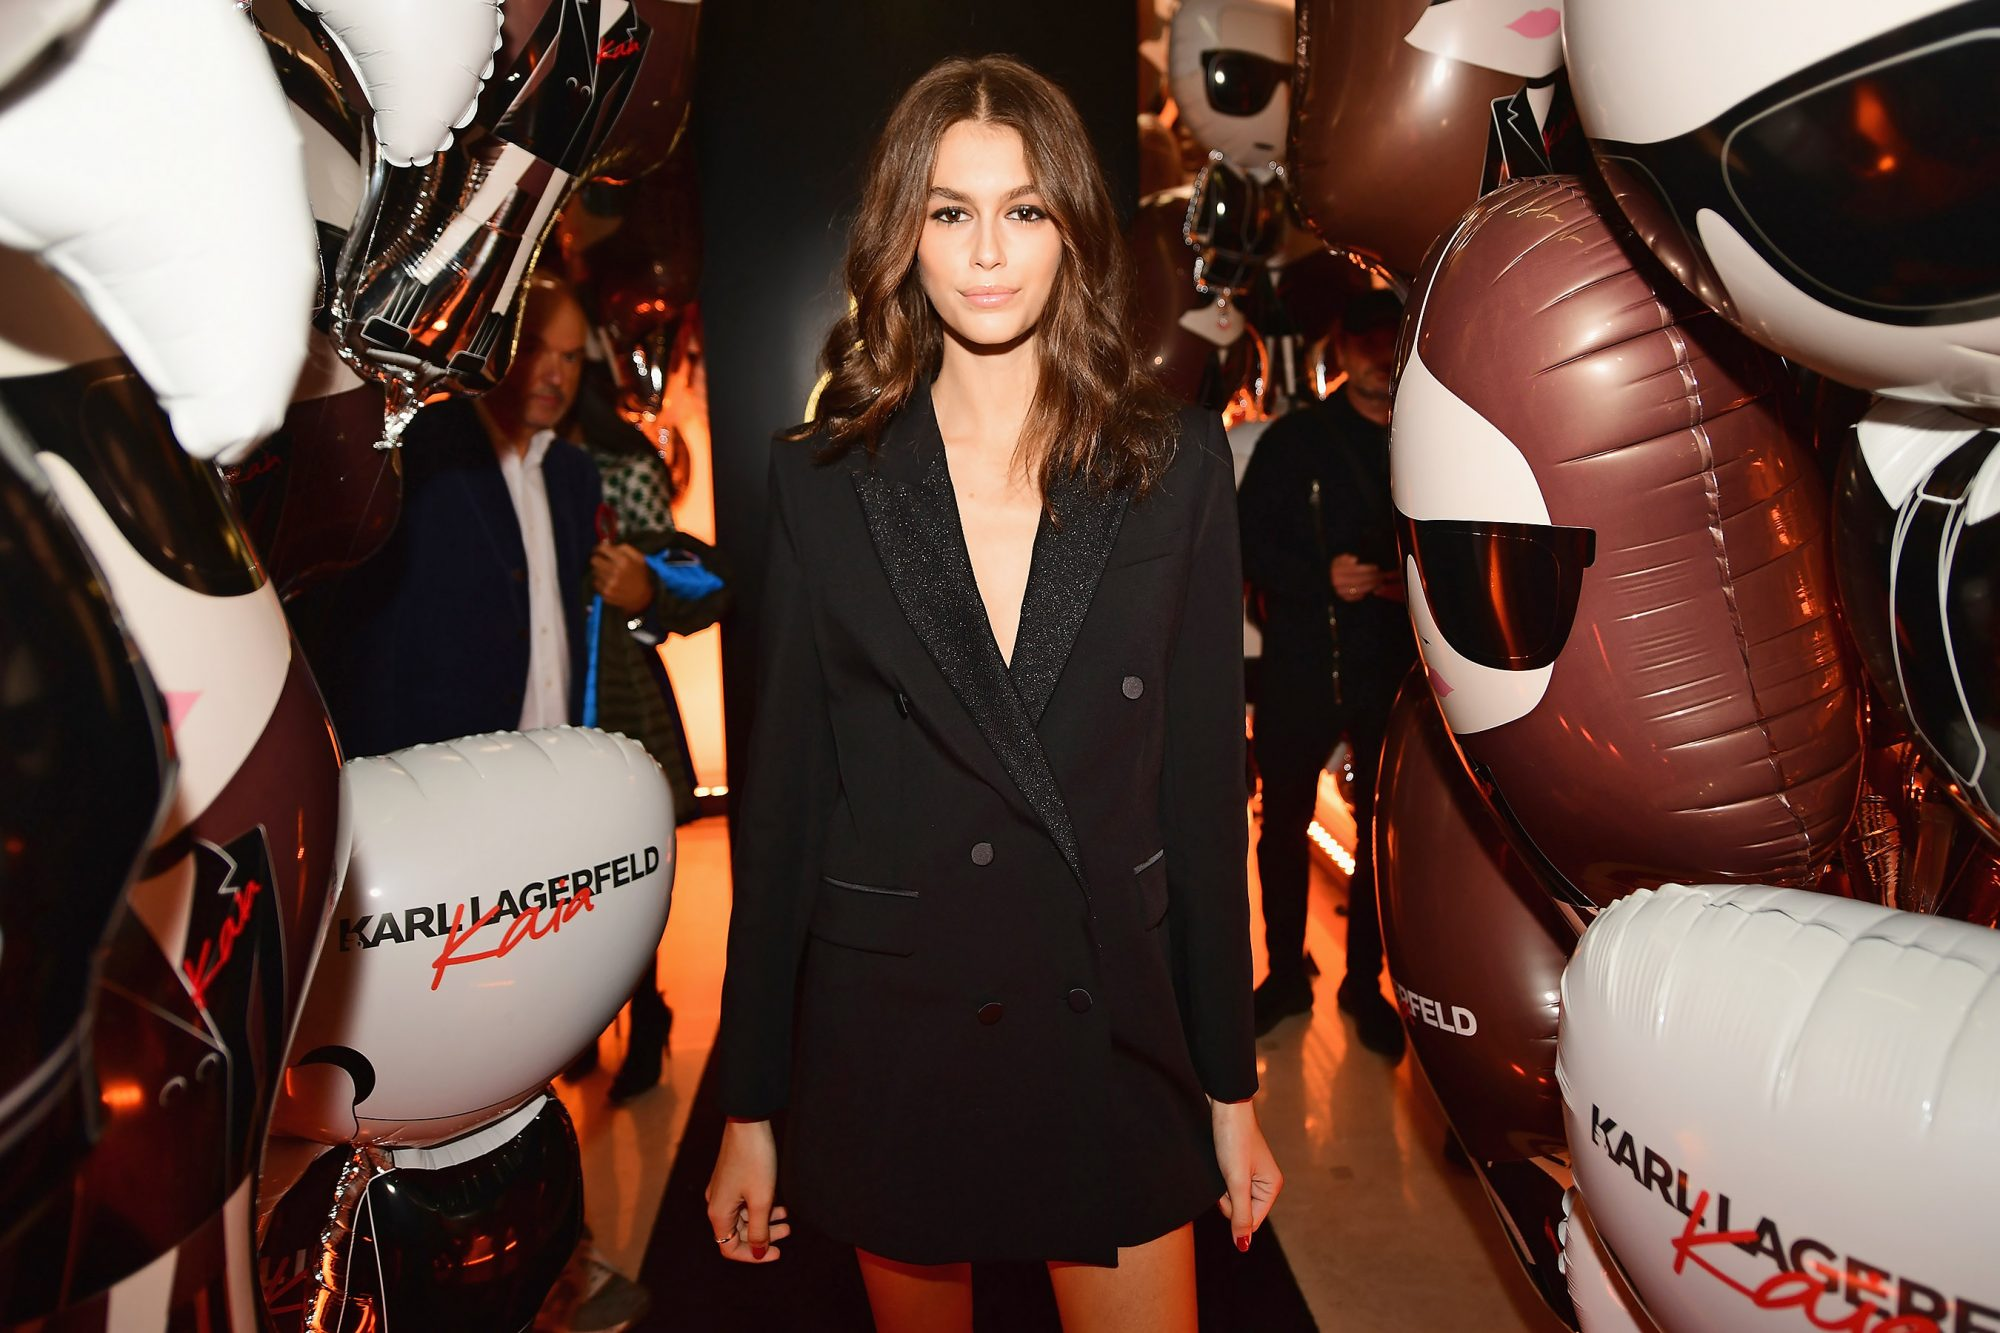 Karl Lagerfeld X Kaia Capsule Collection Launch - Party